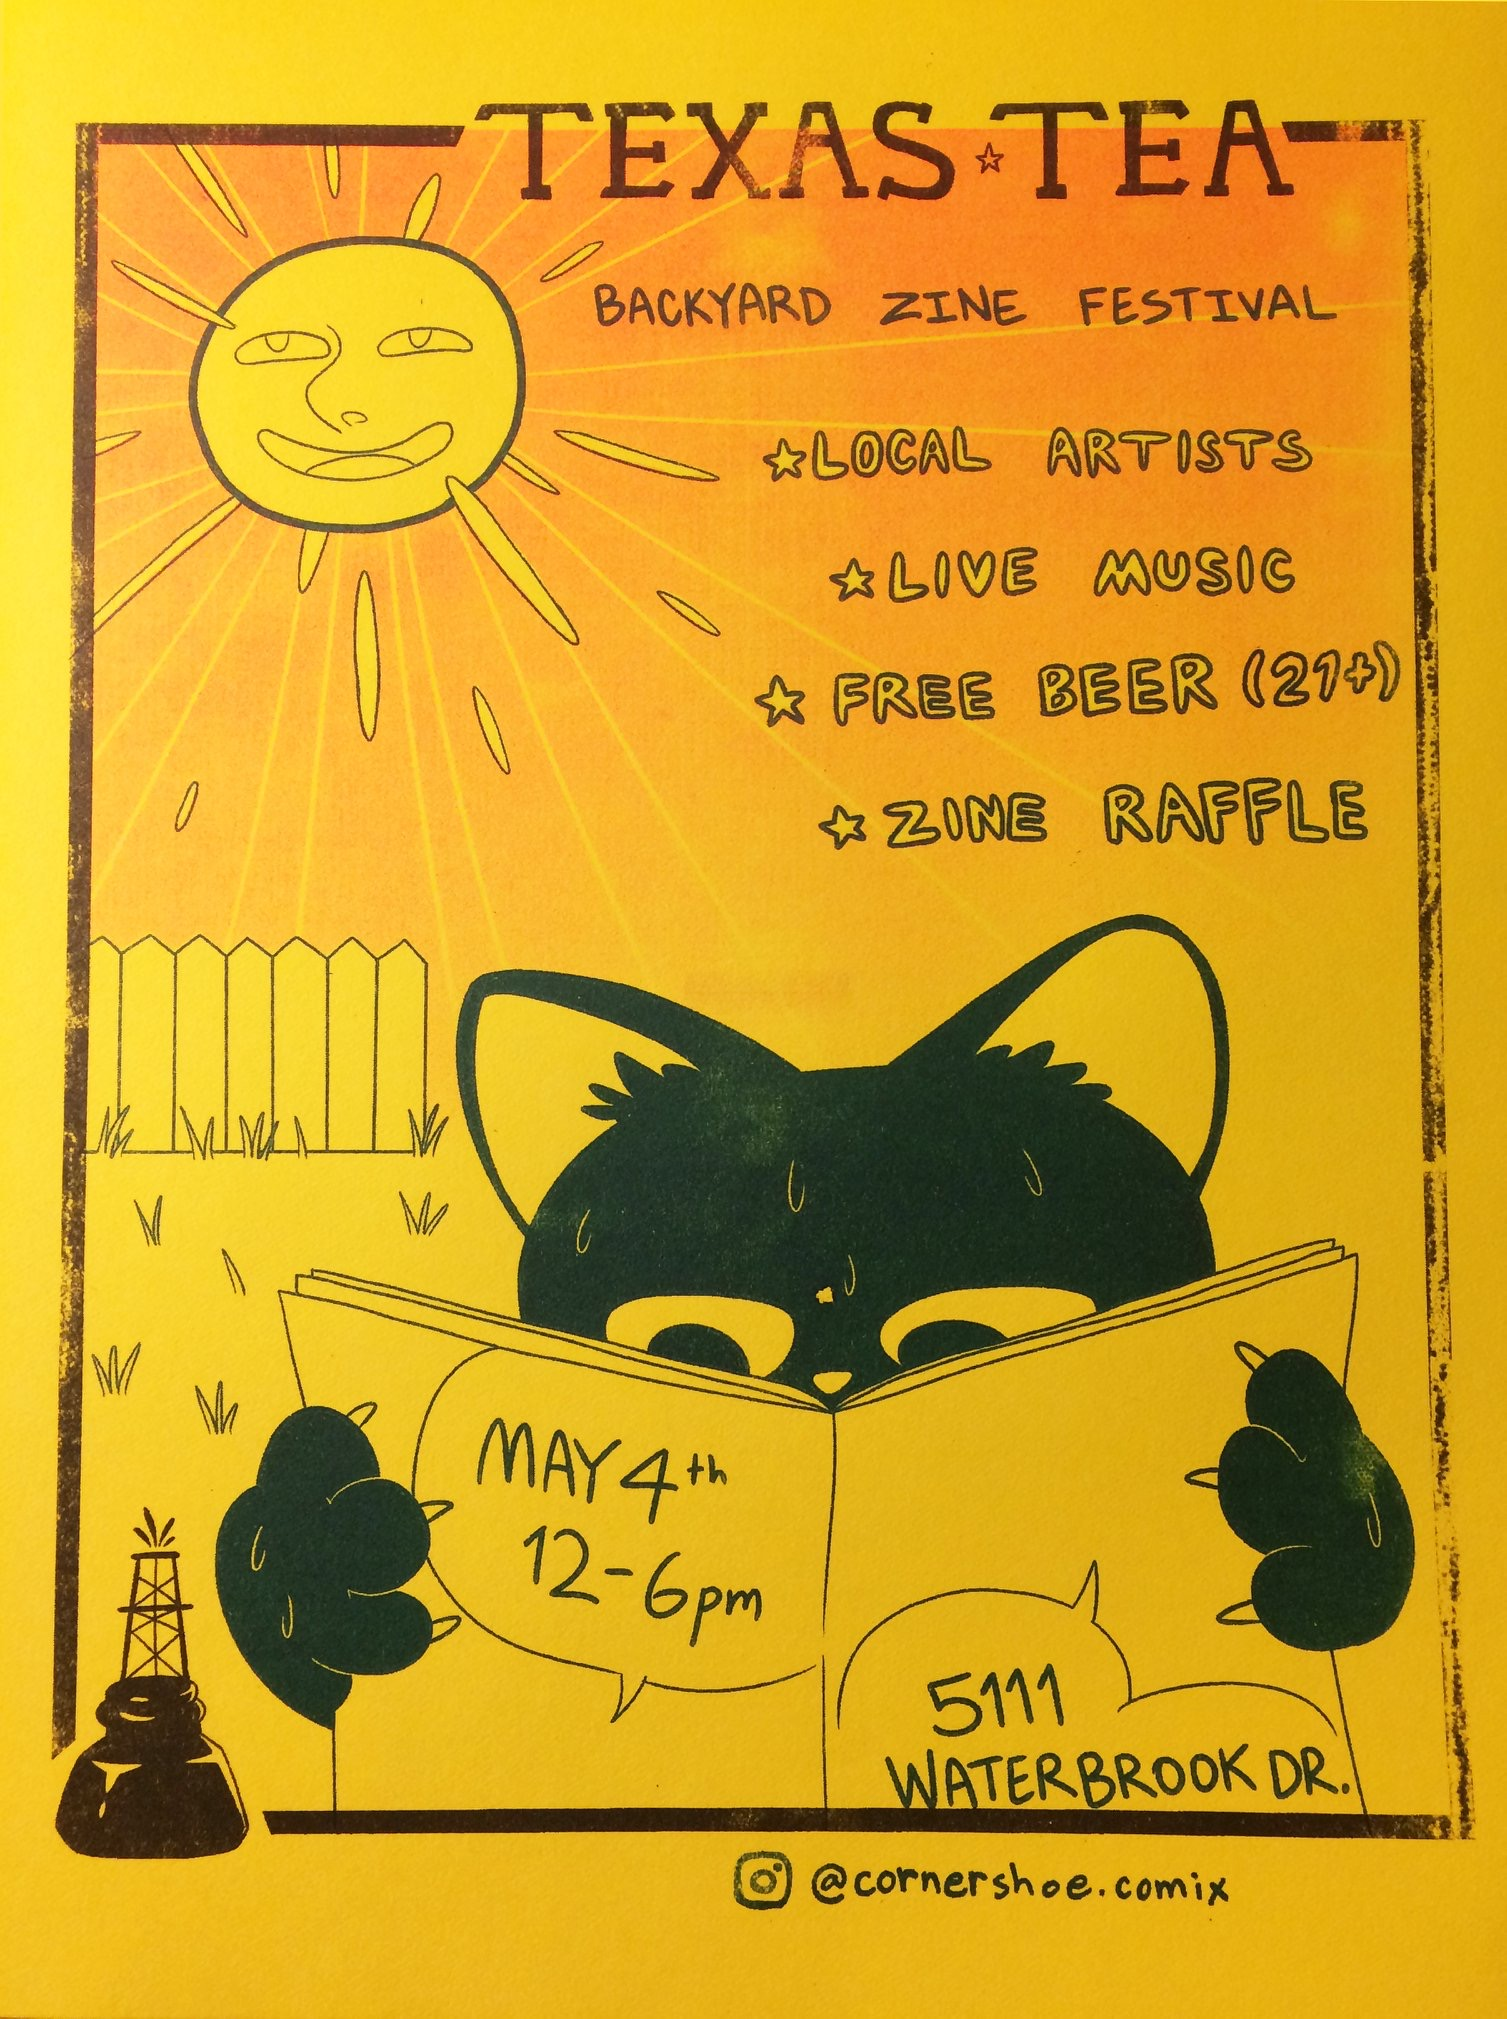 Texas Tea Backyard Zine Festival - Full lineup coming soon!              Wild Disguise will perform at 2pm. Information available in Live section